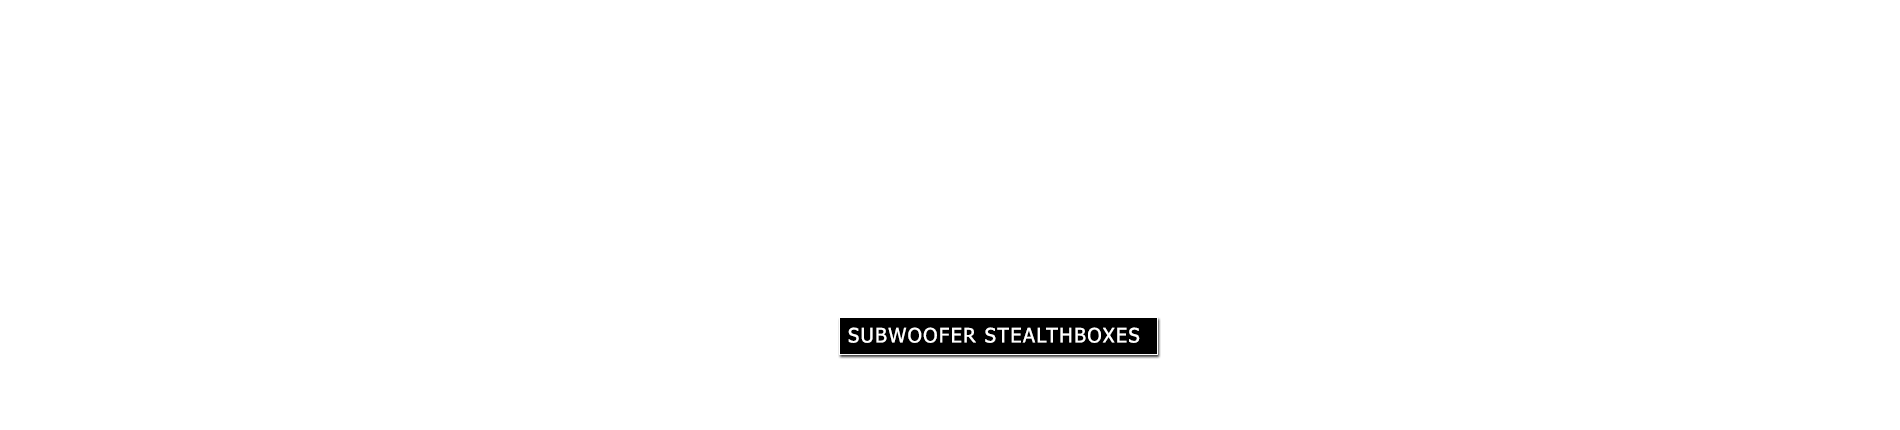 JL Audio Subwoofer Stealthboxes